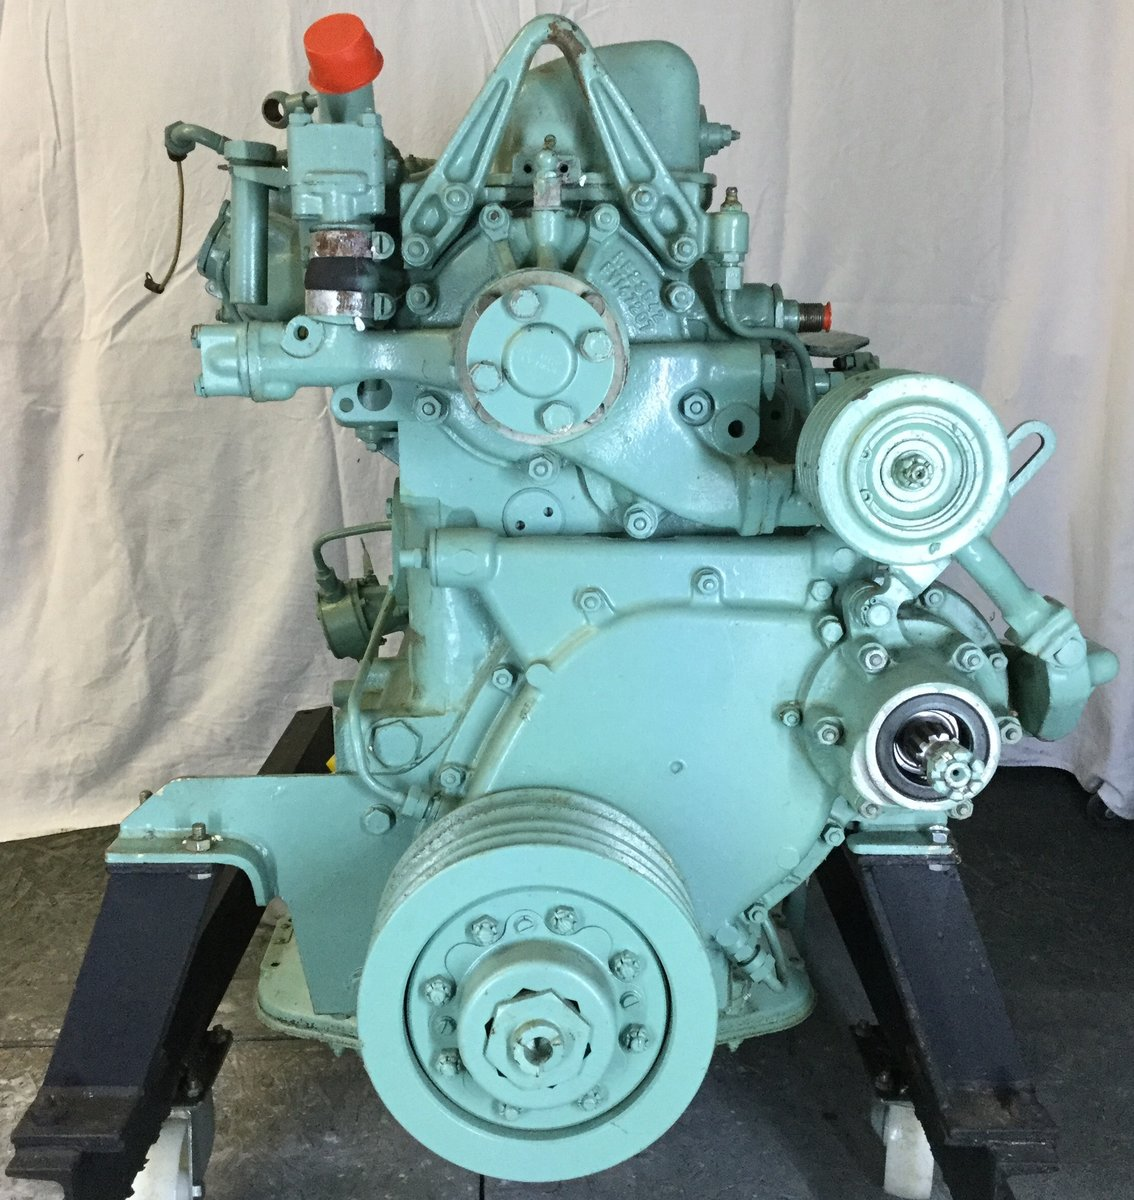 1950 Rolls-Royce B80 Mk 6 5,675 cc Engine Overhauled Bentley Army For Sale (picture 2 of 5)